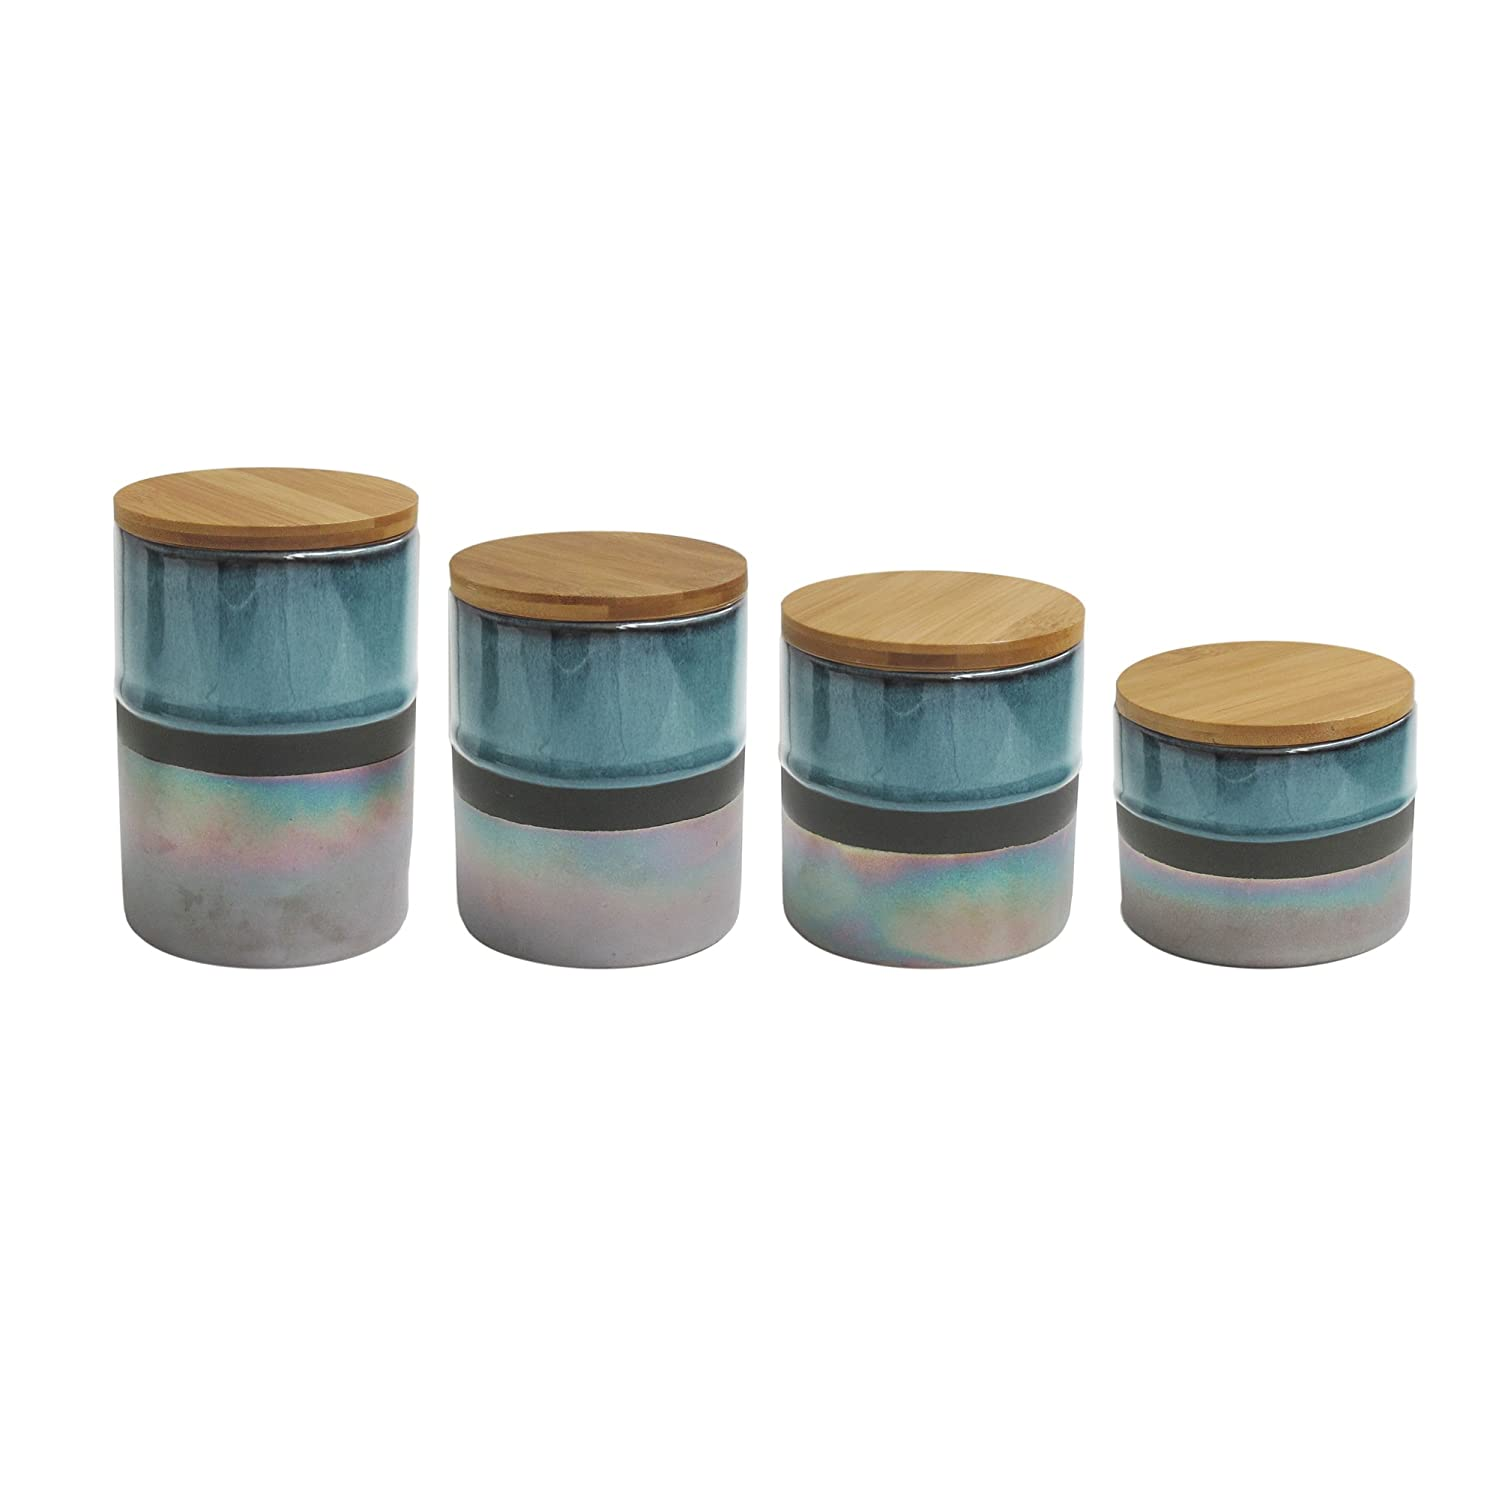 "American Atelier 7016-CAN-RB 4 Piece Abingdon Canister Set 17"" x 4.2"" x 8"" Green/Silver"